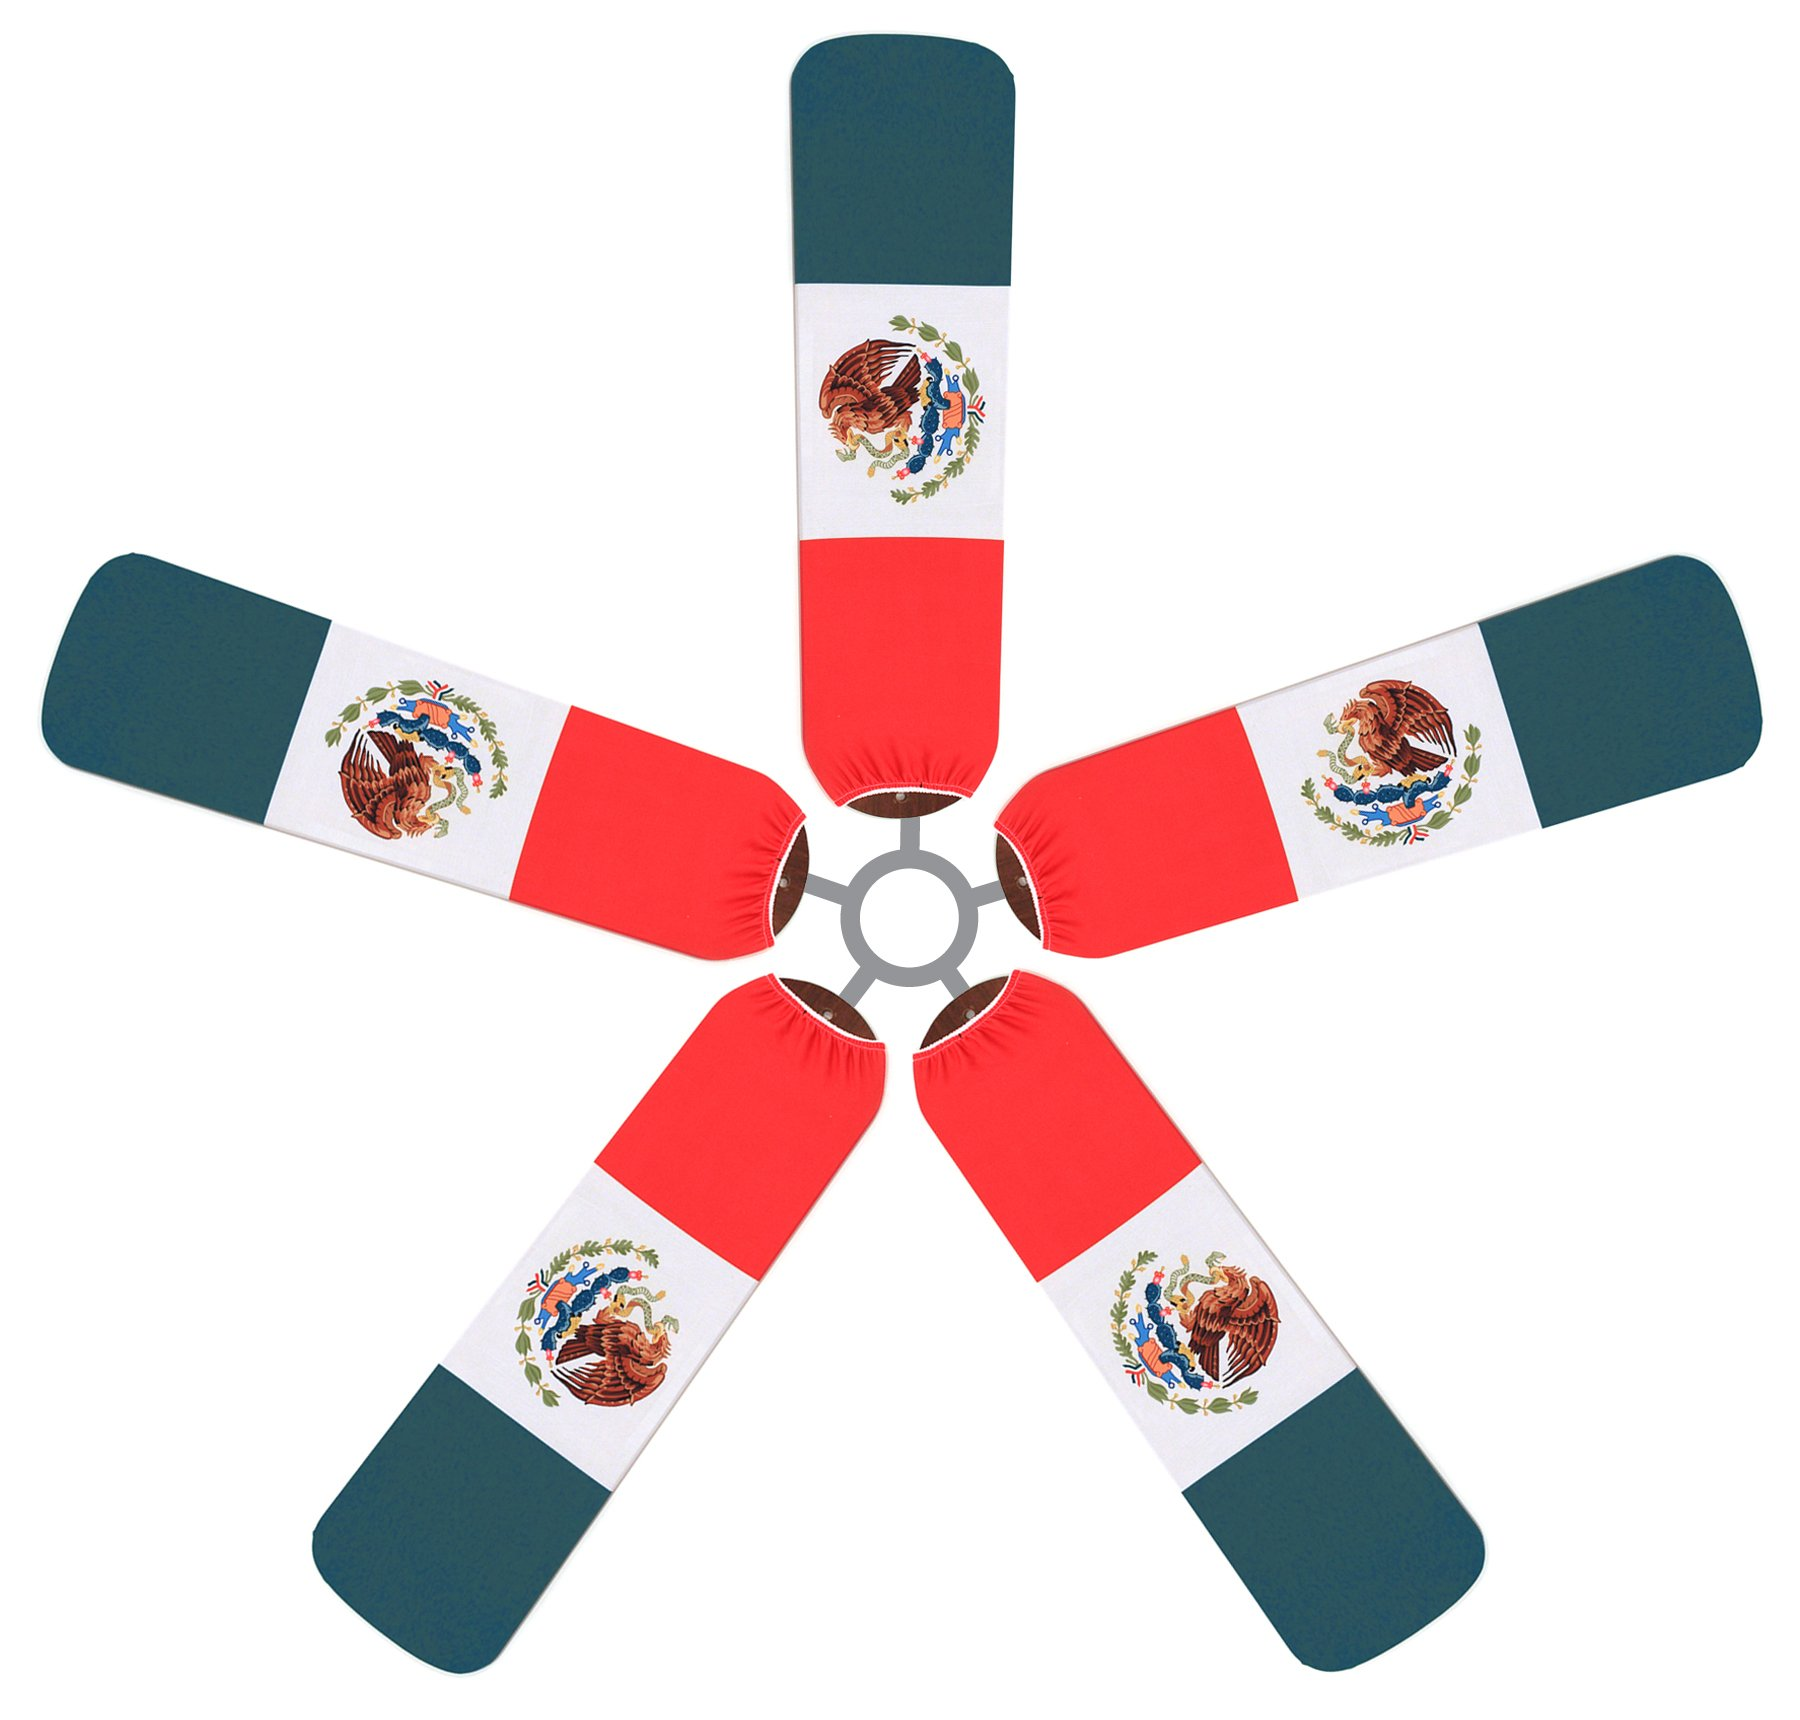 Fan Blade Designs Mexican Flag Ceiling Fan Blade Covers